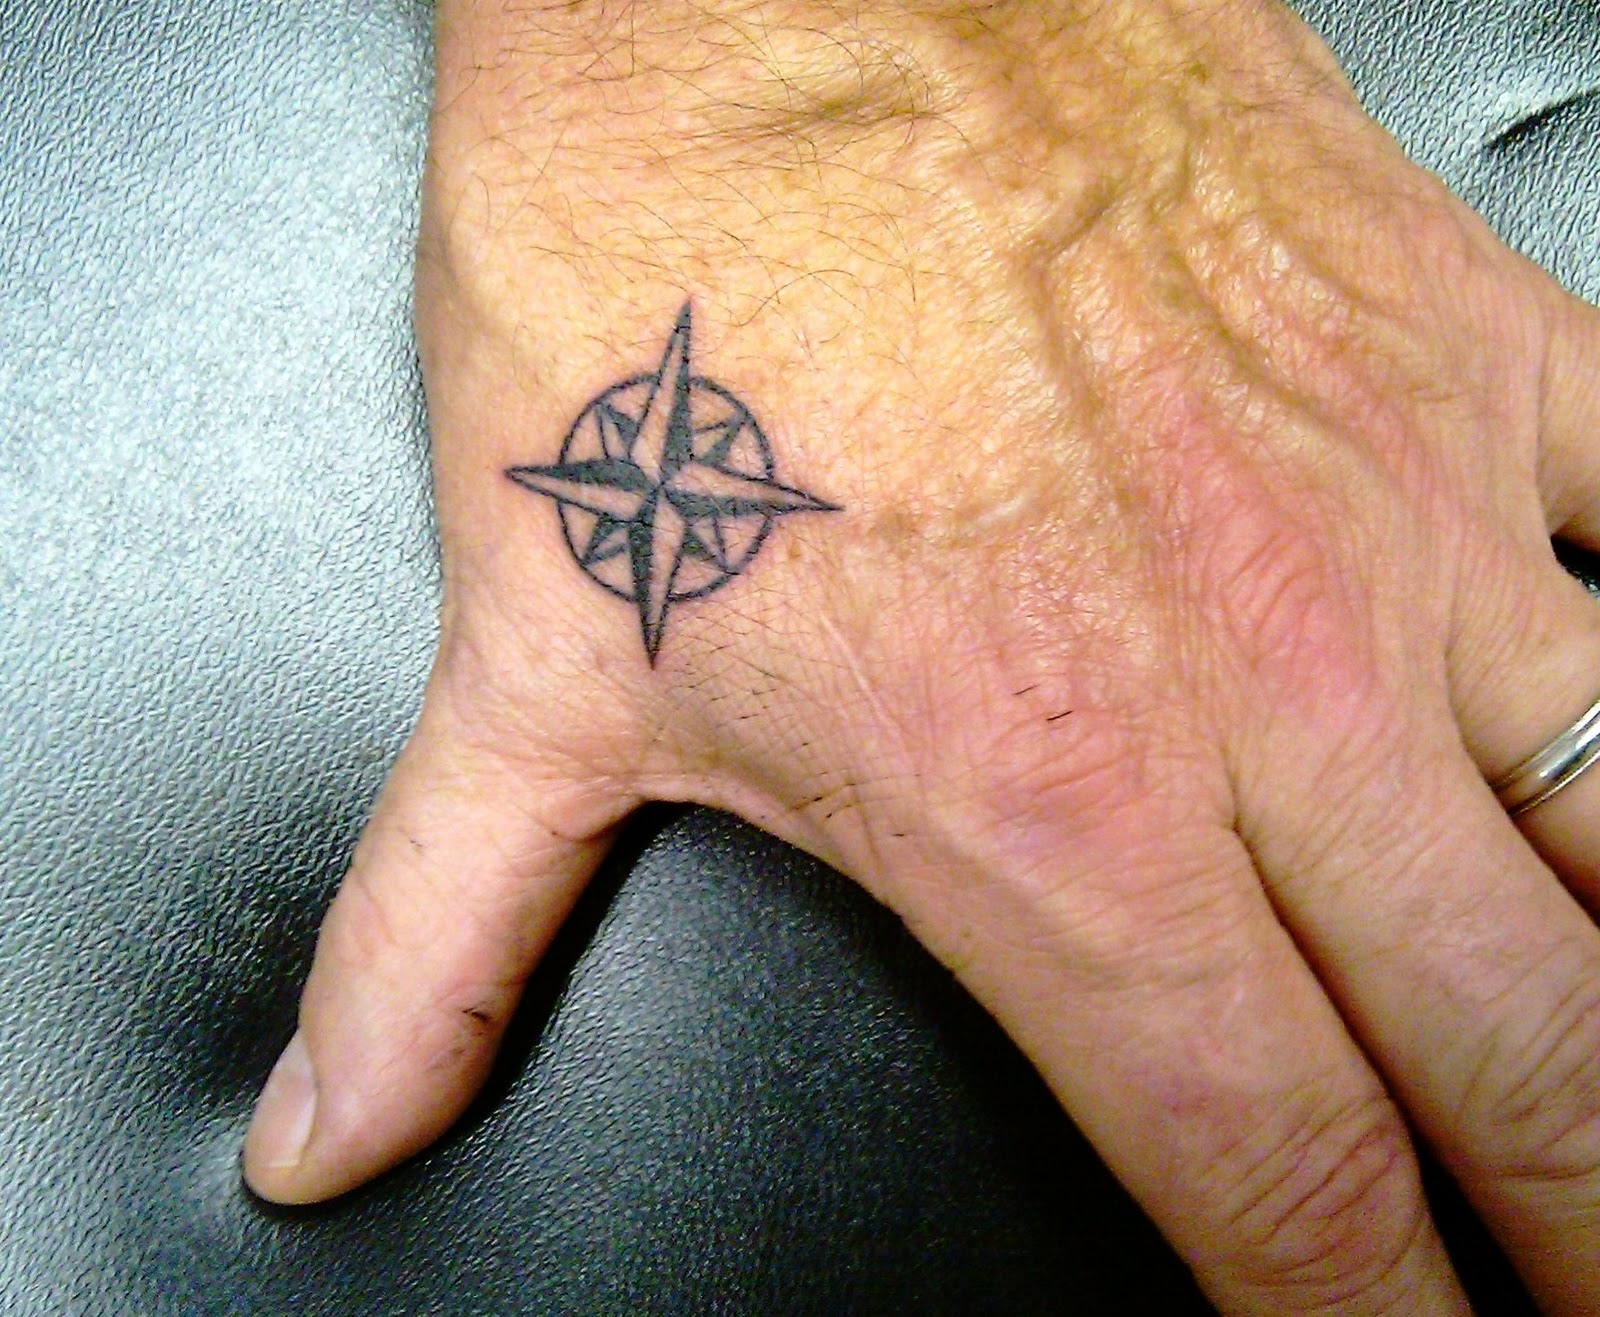 Tattoo; Compass Rose, On Hand